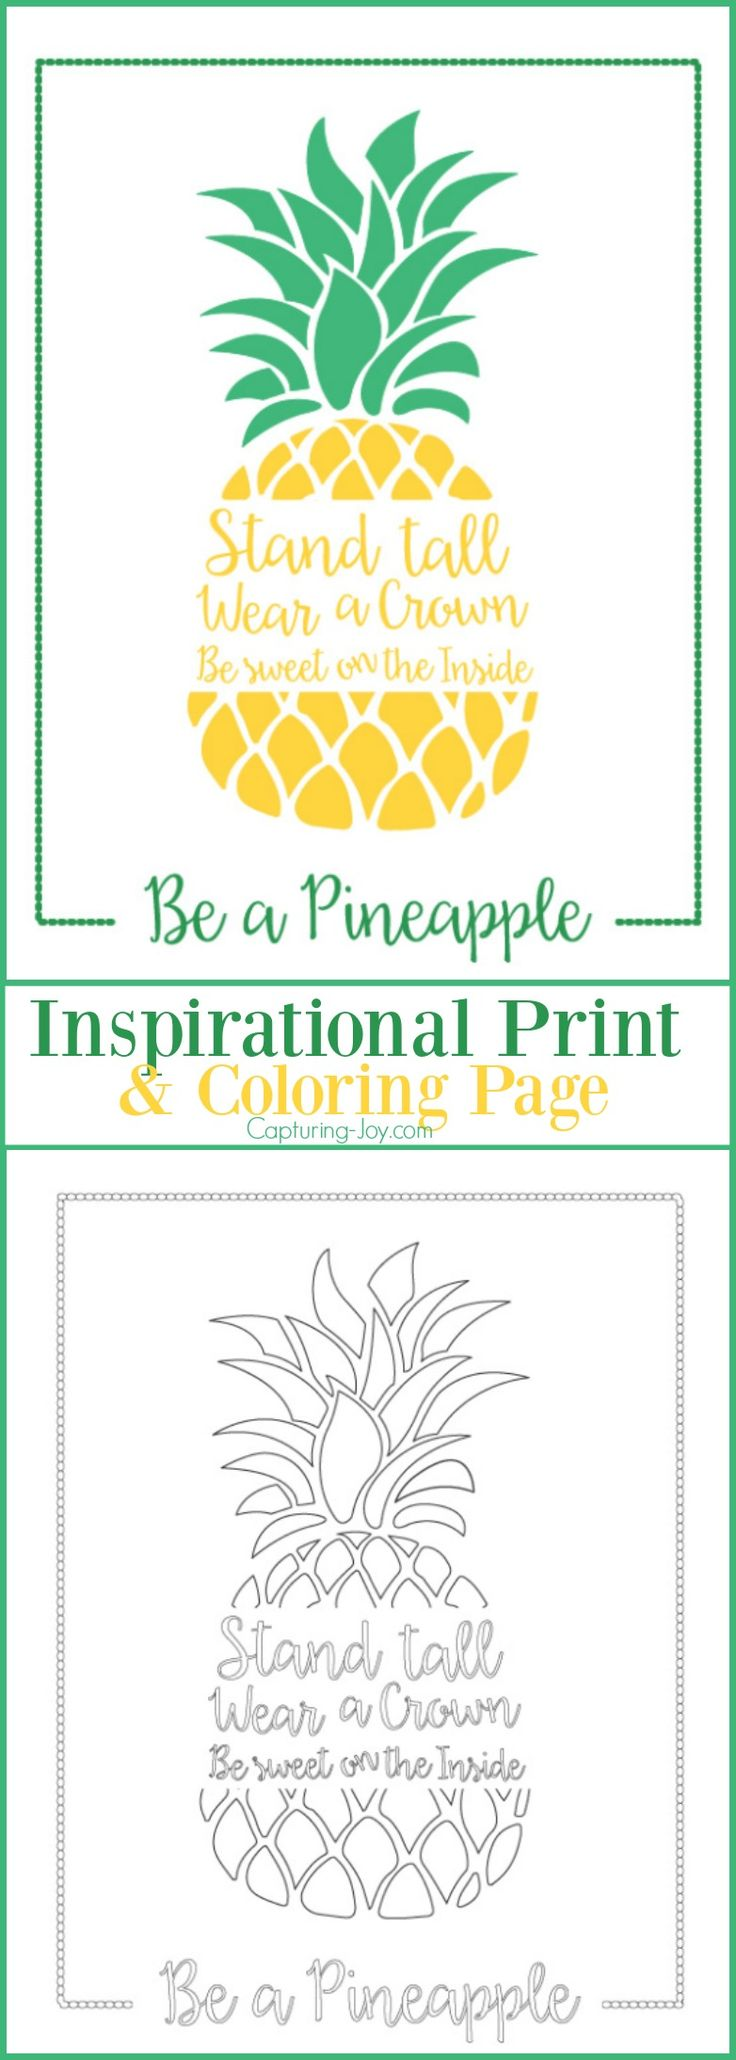 Be a Pineapple Inspirational Print and Coloring Page | This is a fun summer boredom buster! - Capturing-Joy.com